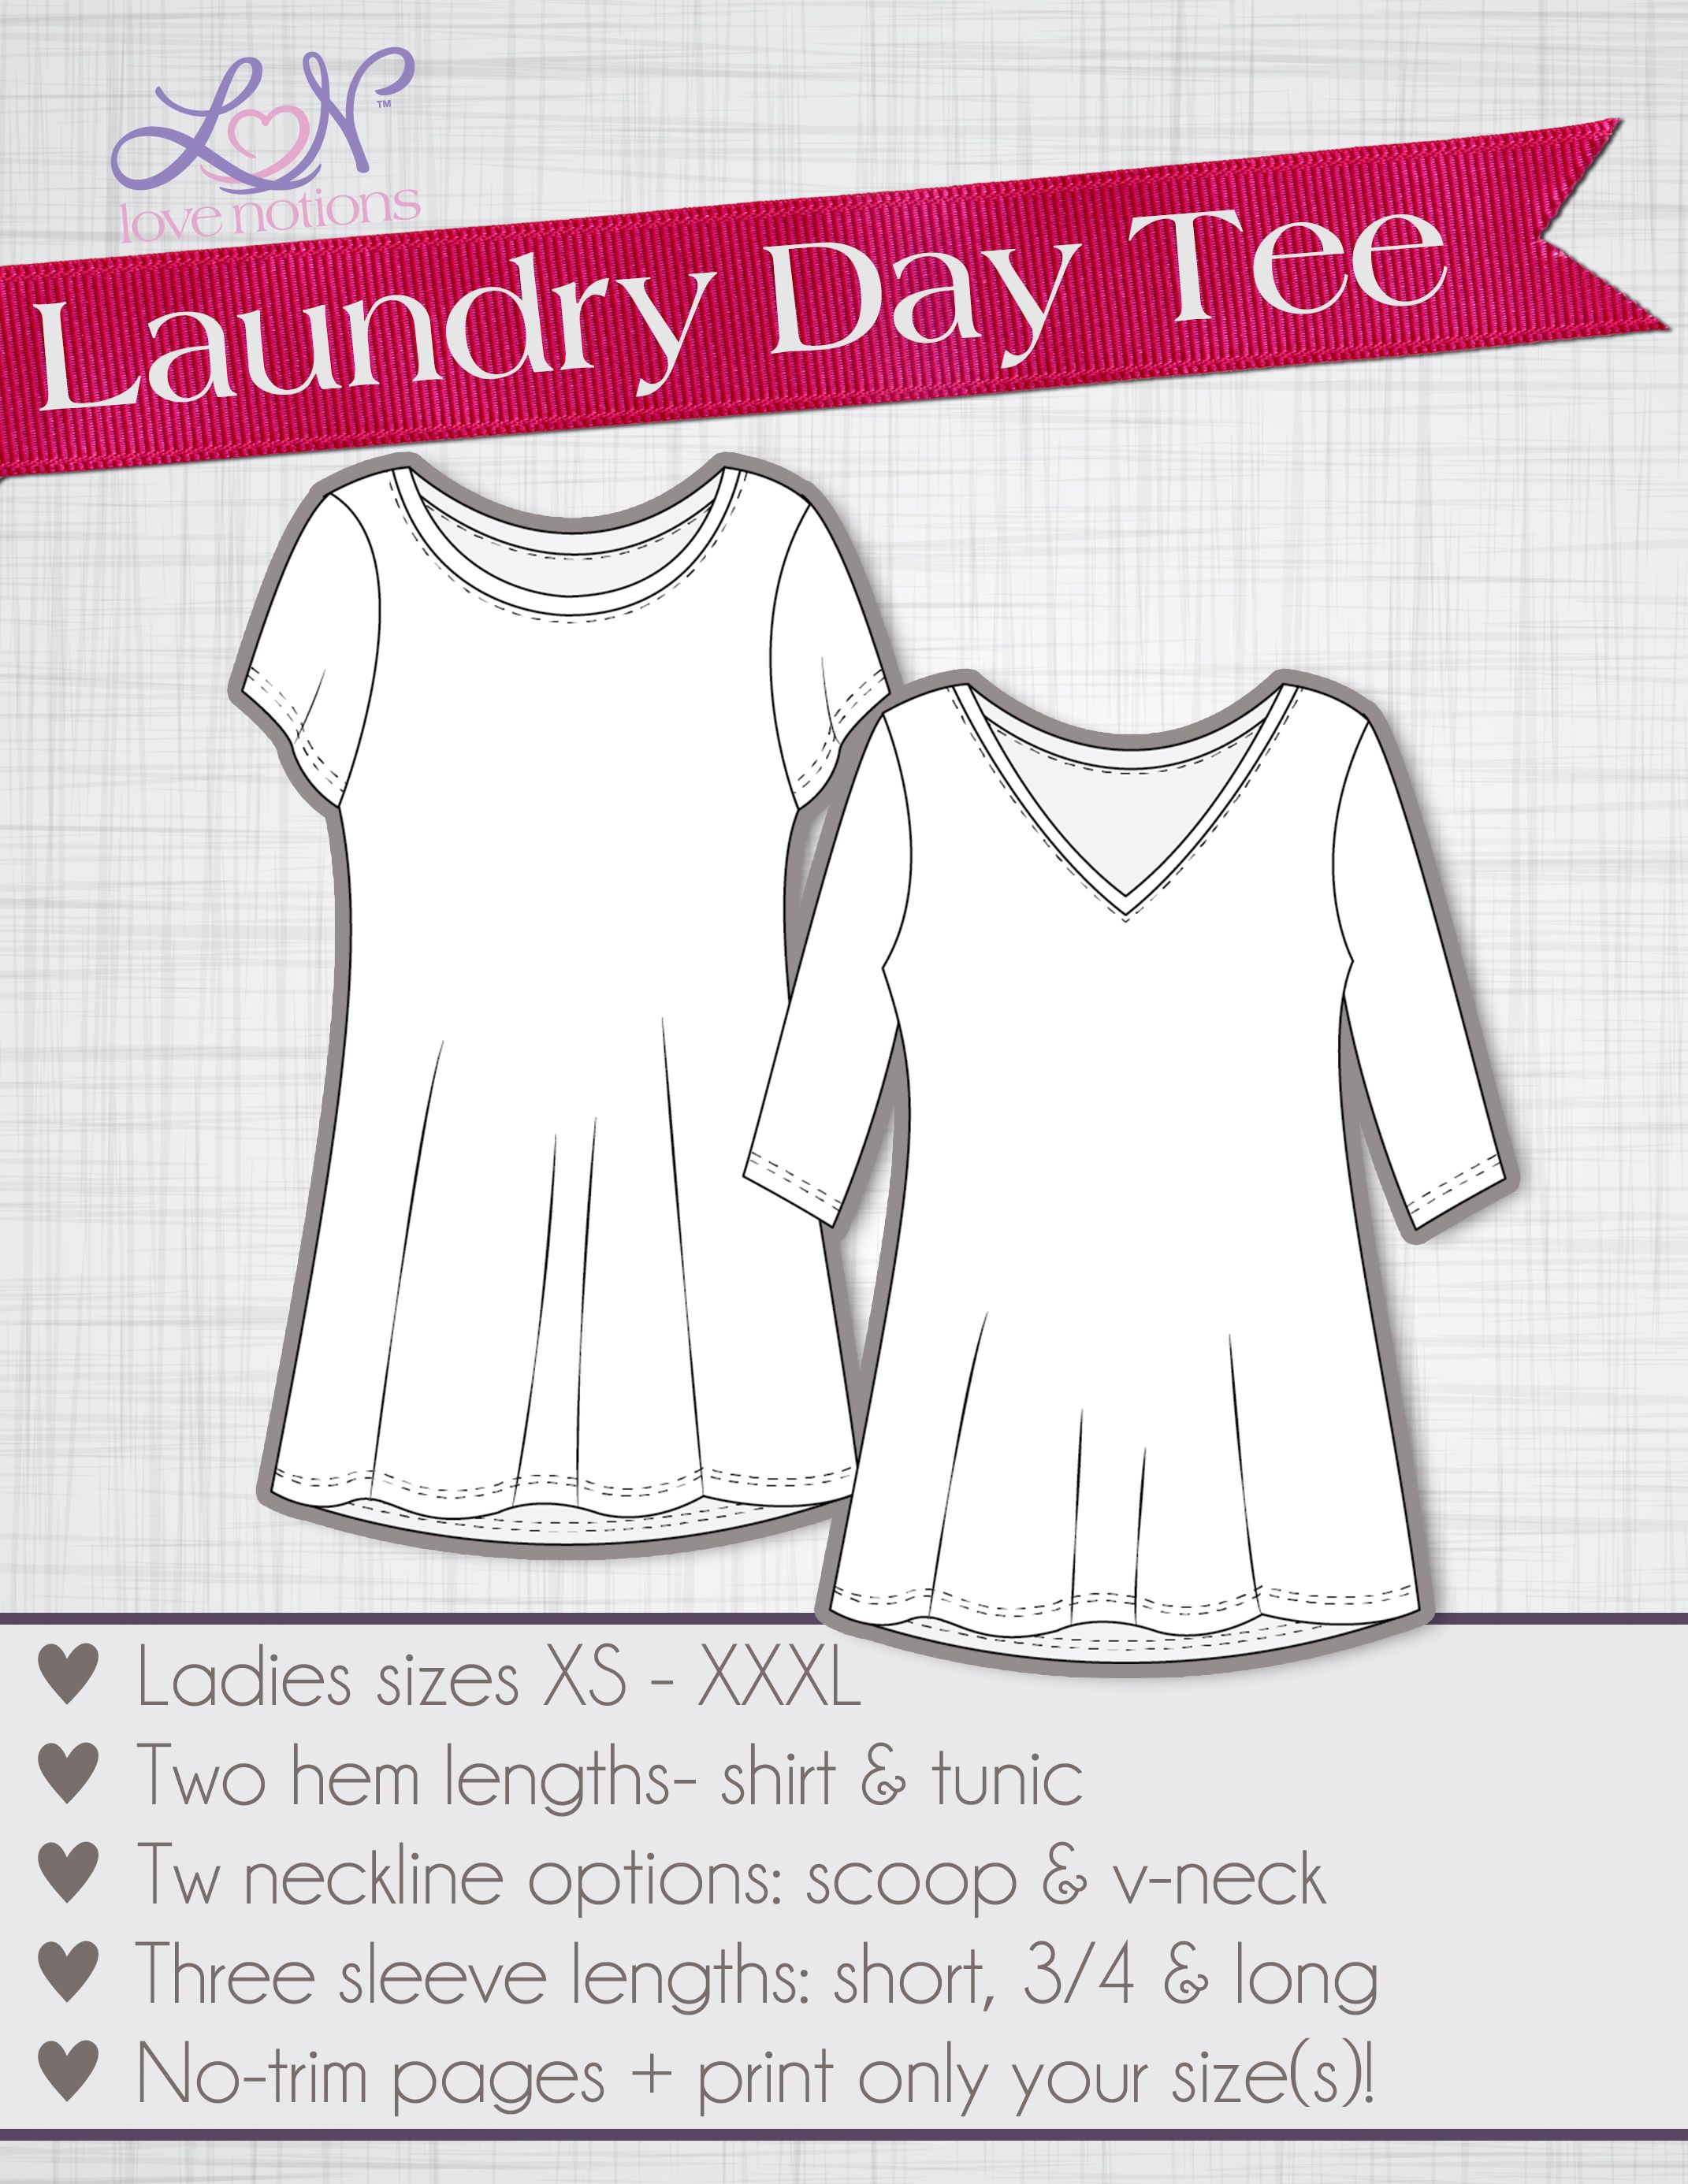 Love Notions Laundry Day Tee XS-XXXL | Costura facil y Costura